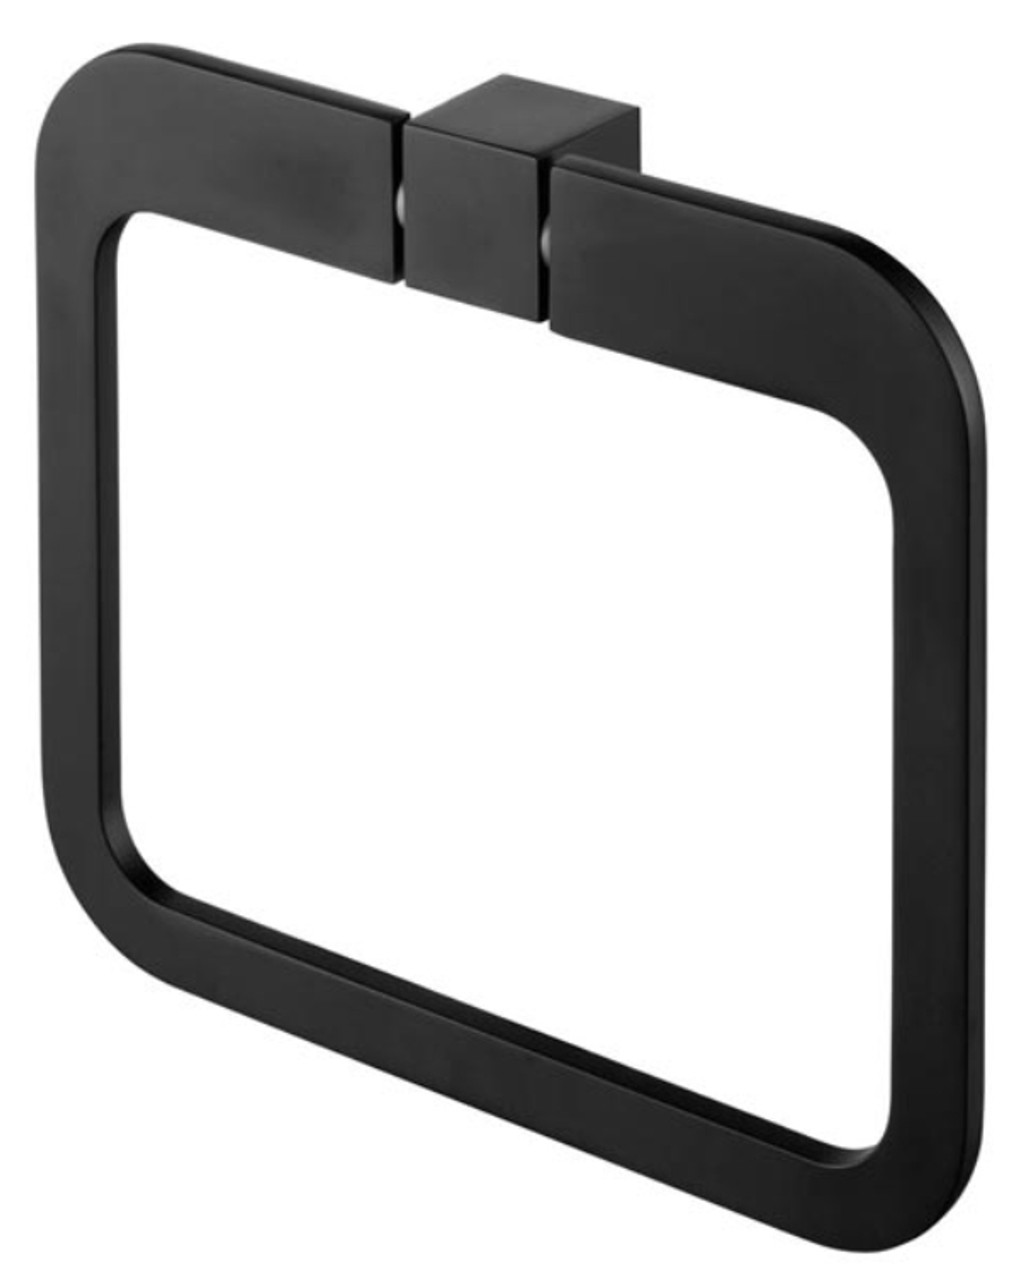 492d632062 Wall Towel Ring Round Dressing-Gown Hanger Bathroom Black Powder Coated  Zamak from Towel rails ...